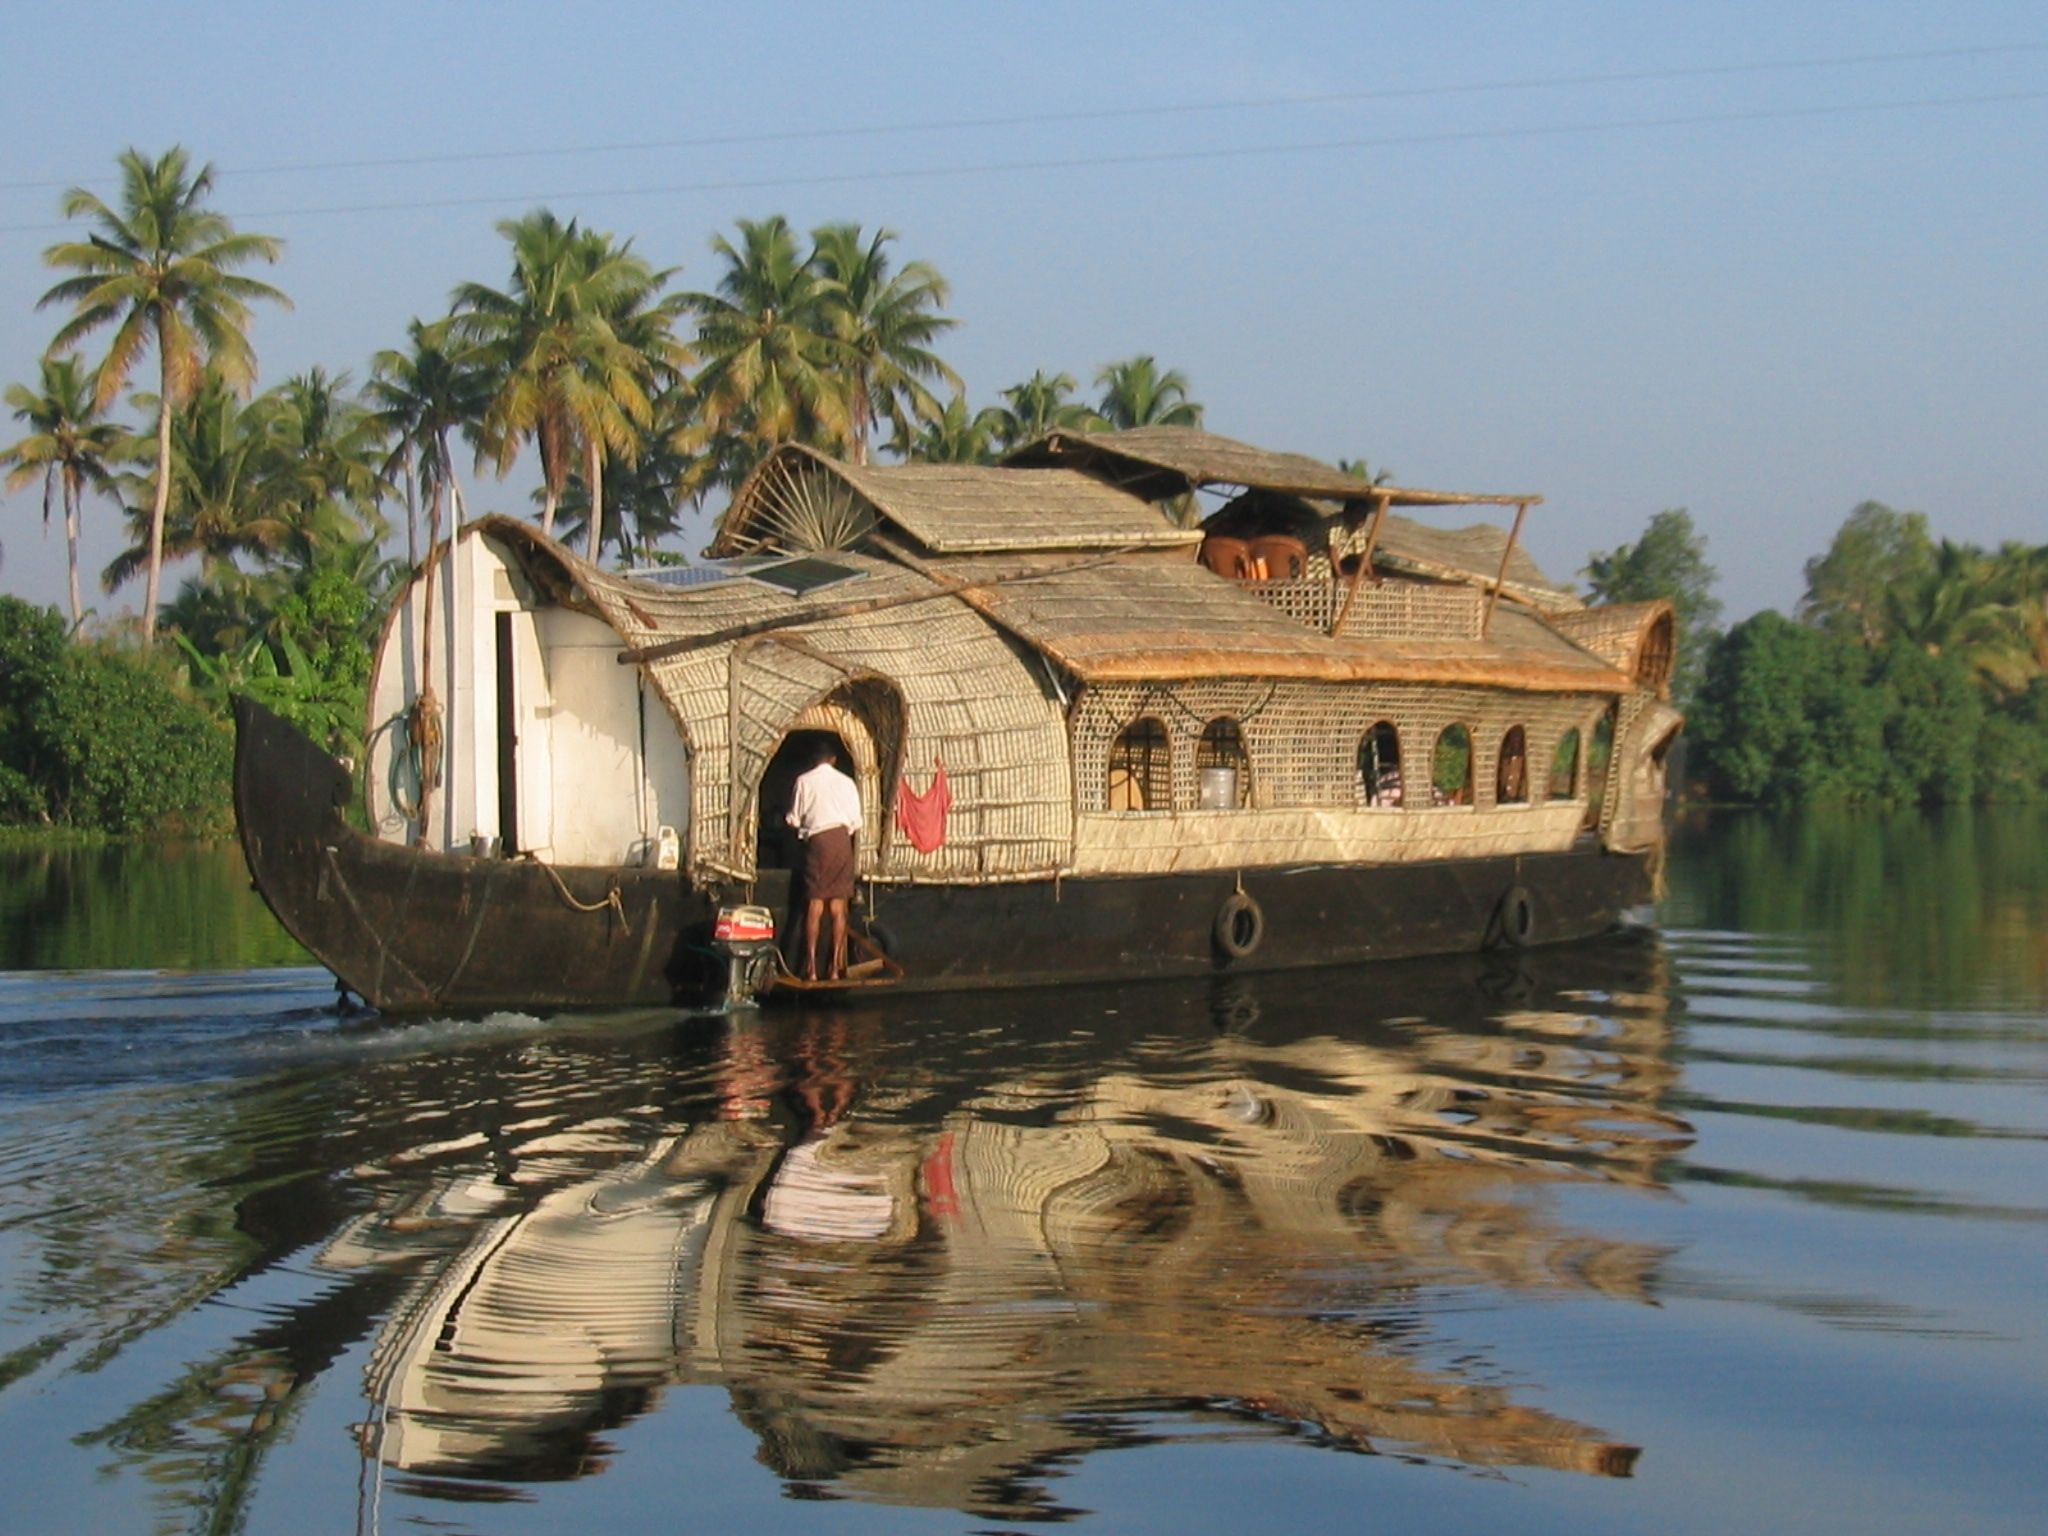 Houseboats hunkering down in the zombie apocalypse zombie apocalypse zombies house